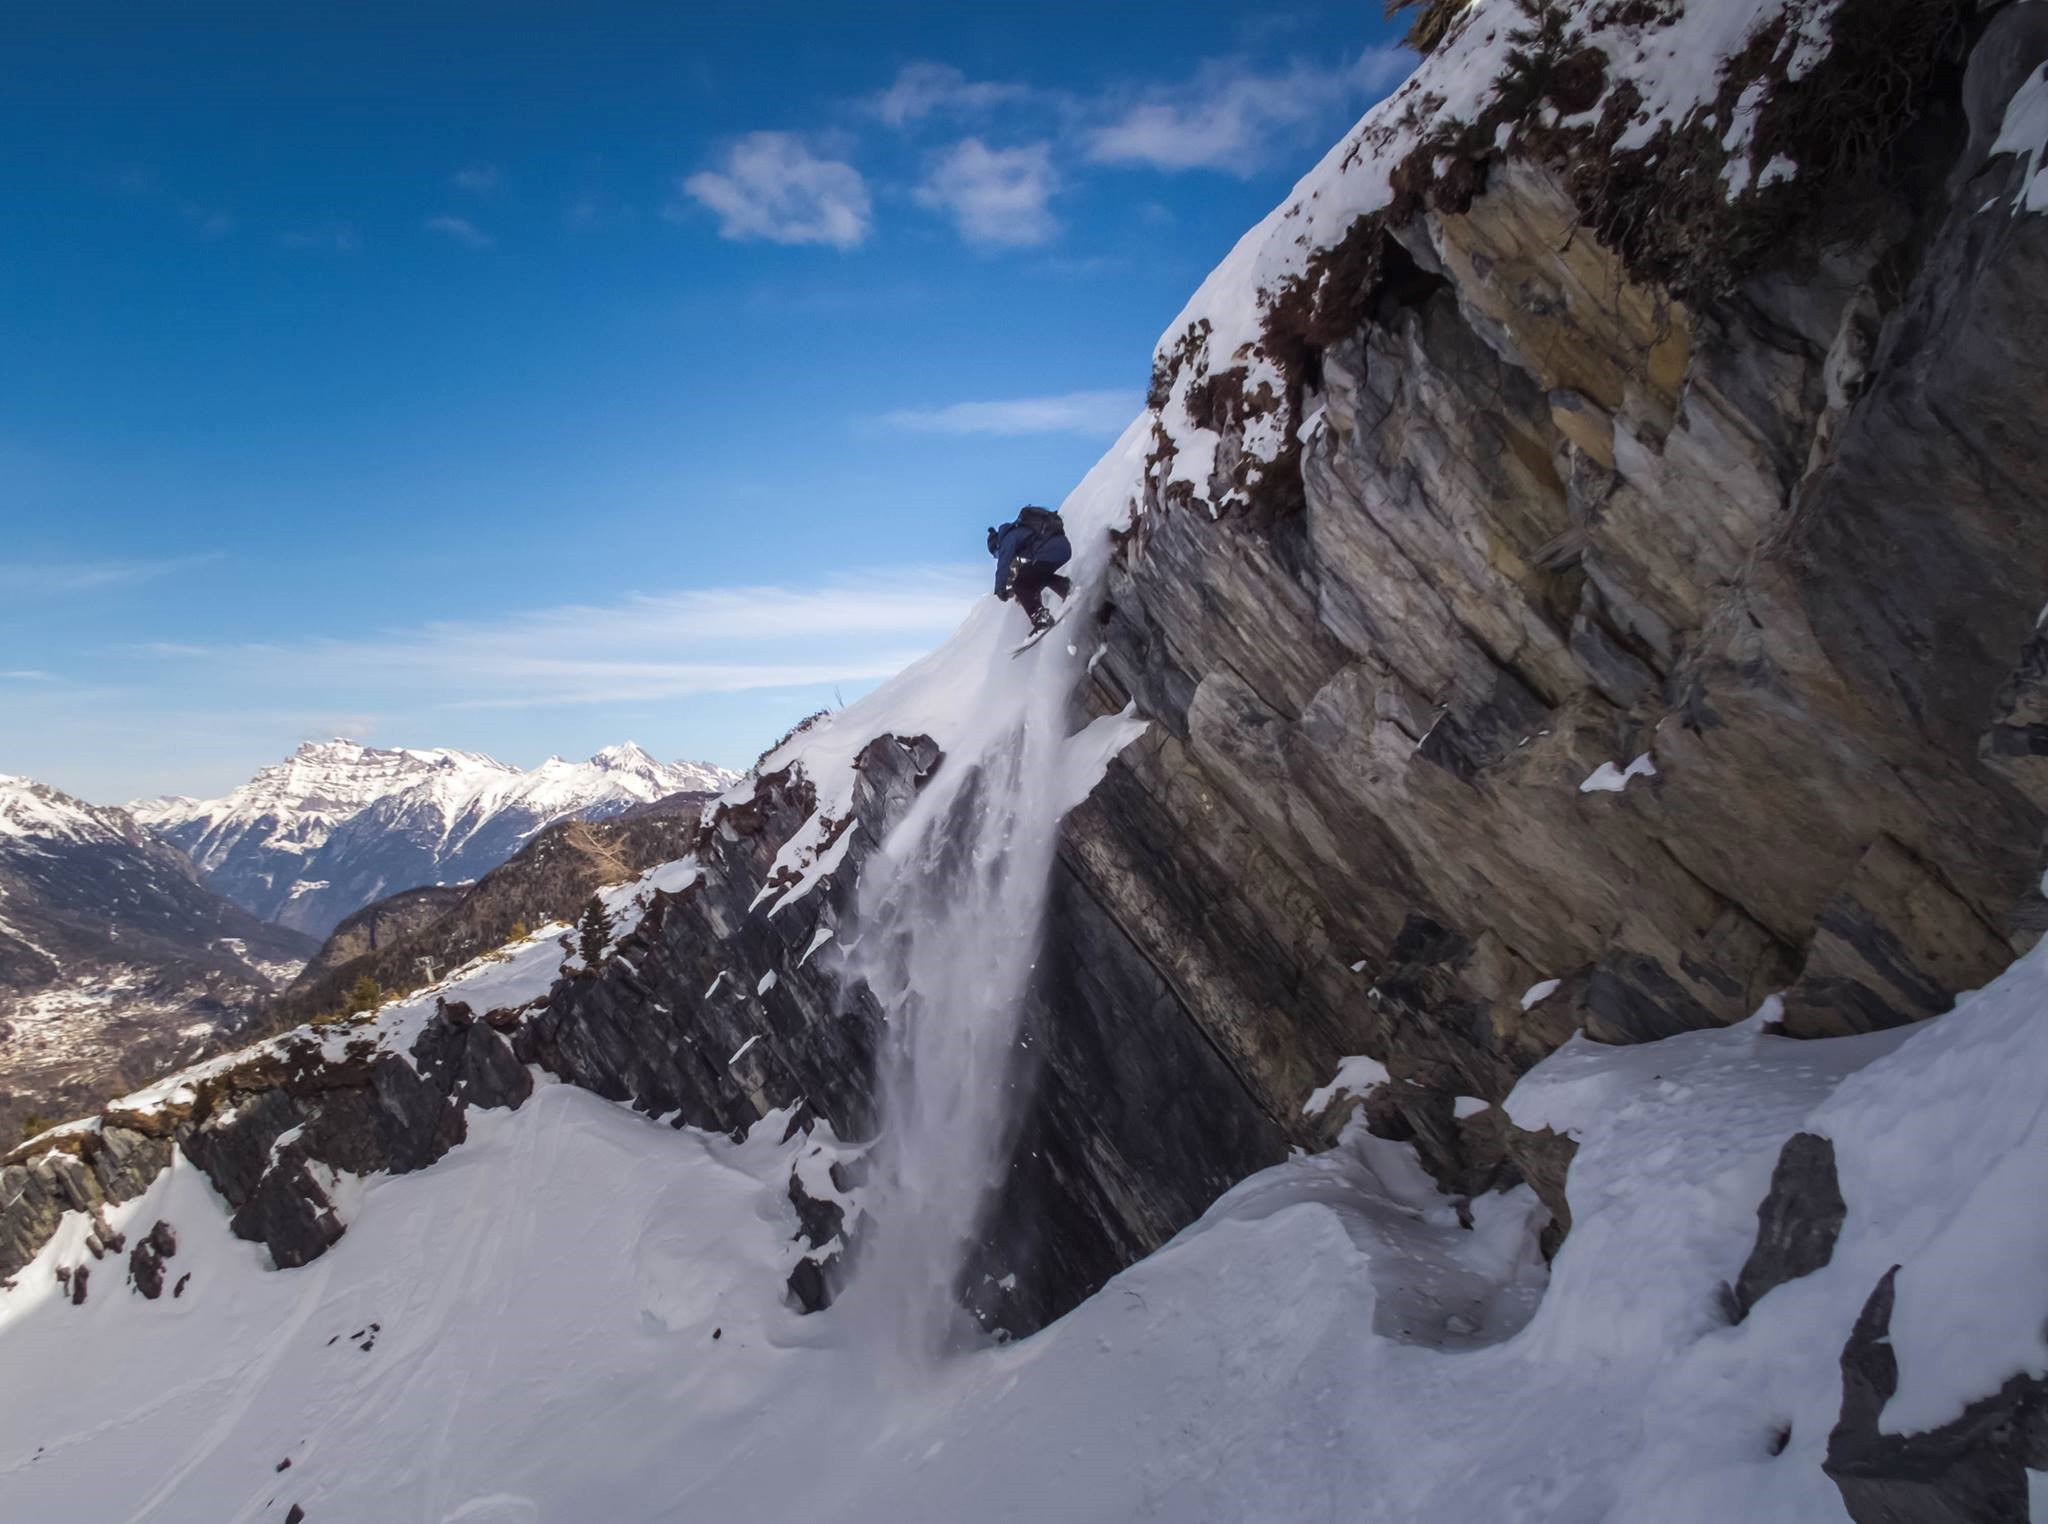 André's January Update from Chamonix